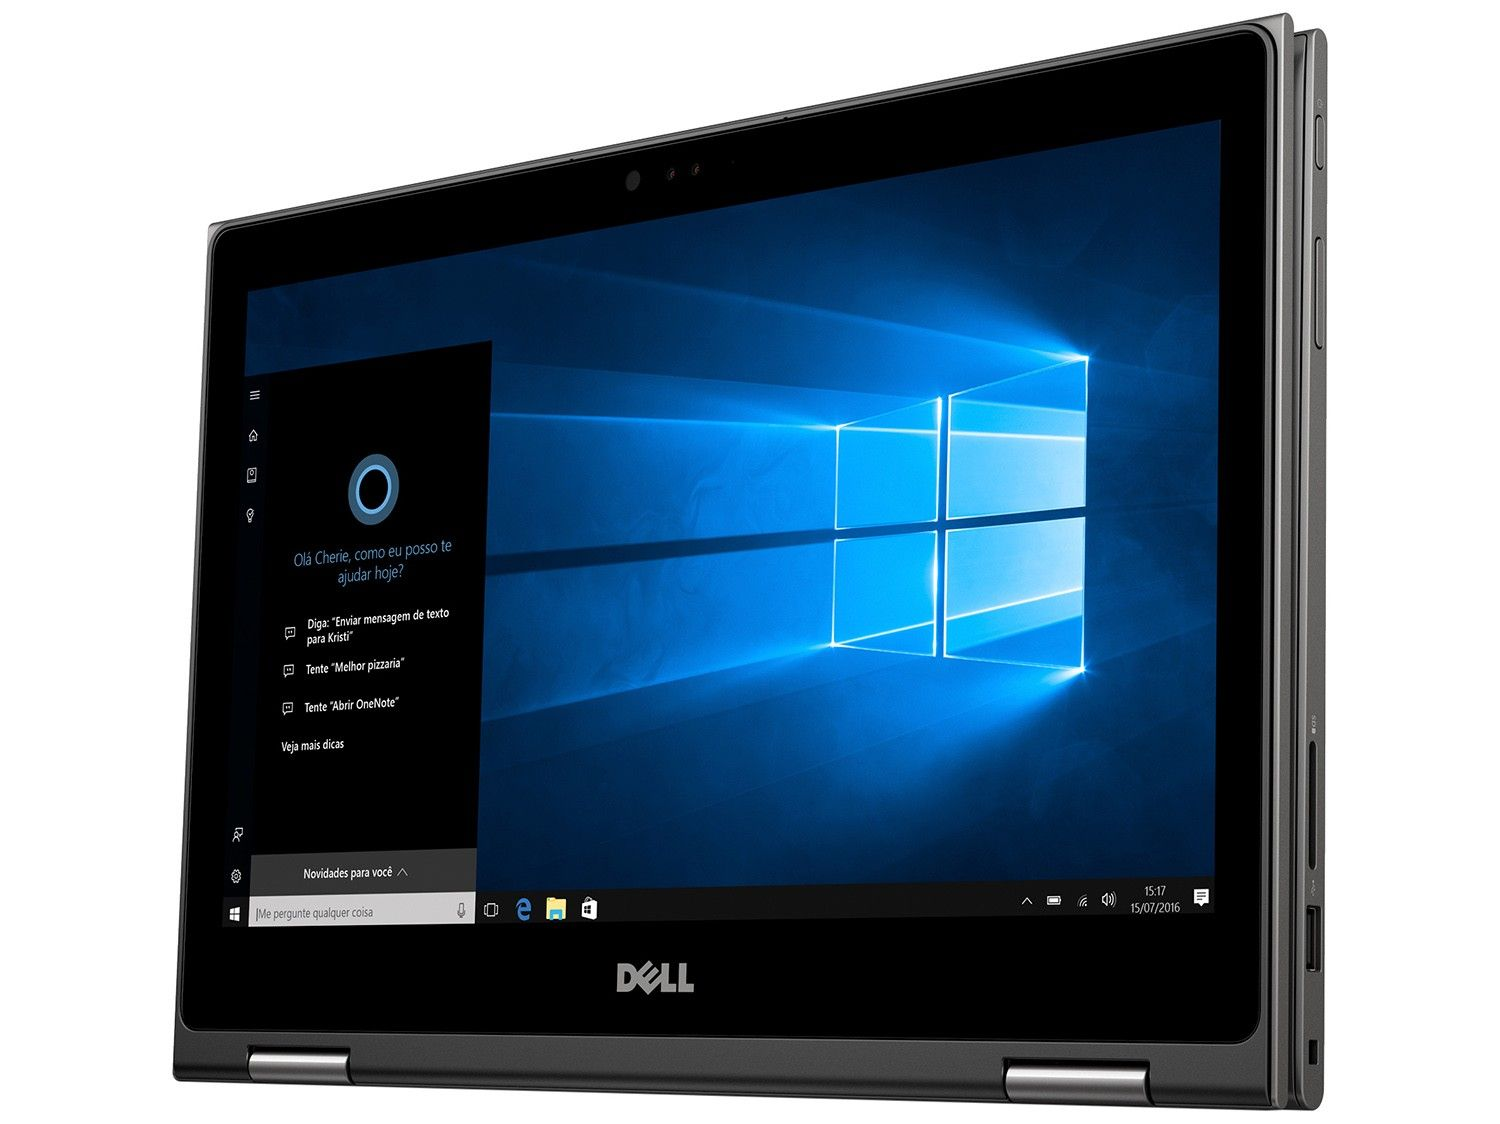 Notebook Dell Inspiron 5378 2-1 I7-7500U 3.5Ghz| 1Tb| 8Gb| 13| Touch| Win10Pro